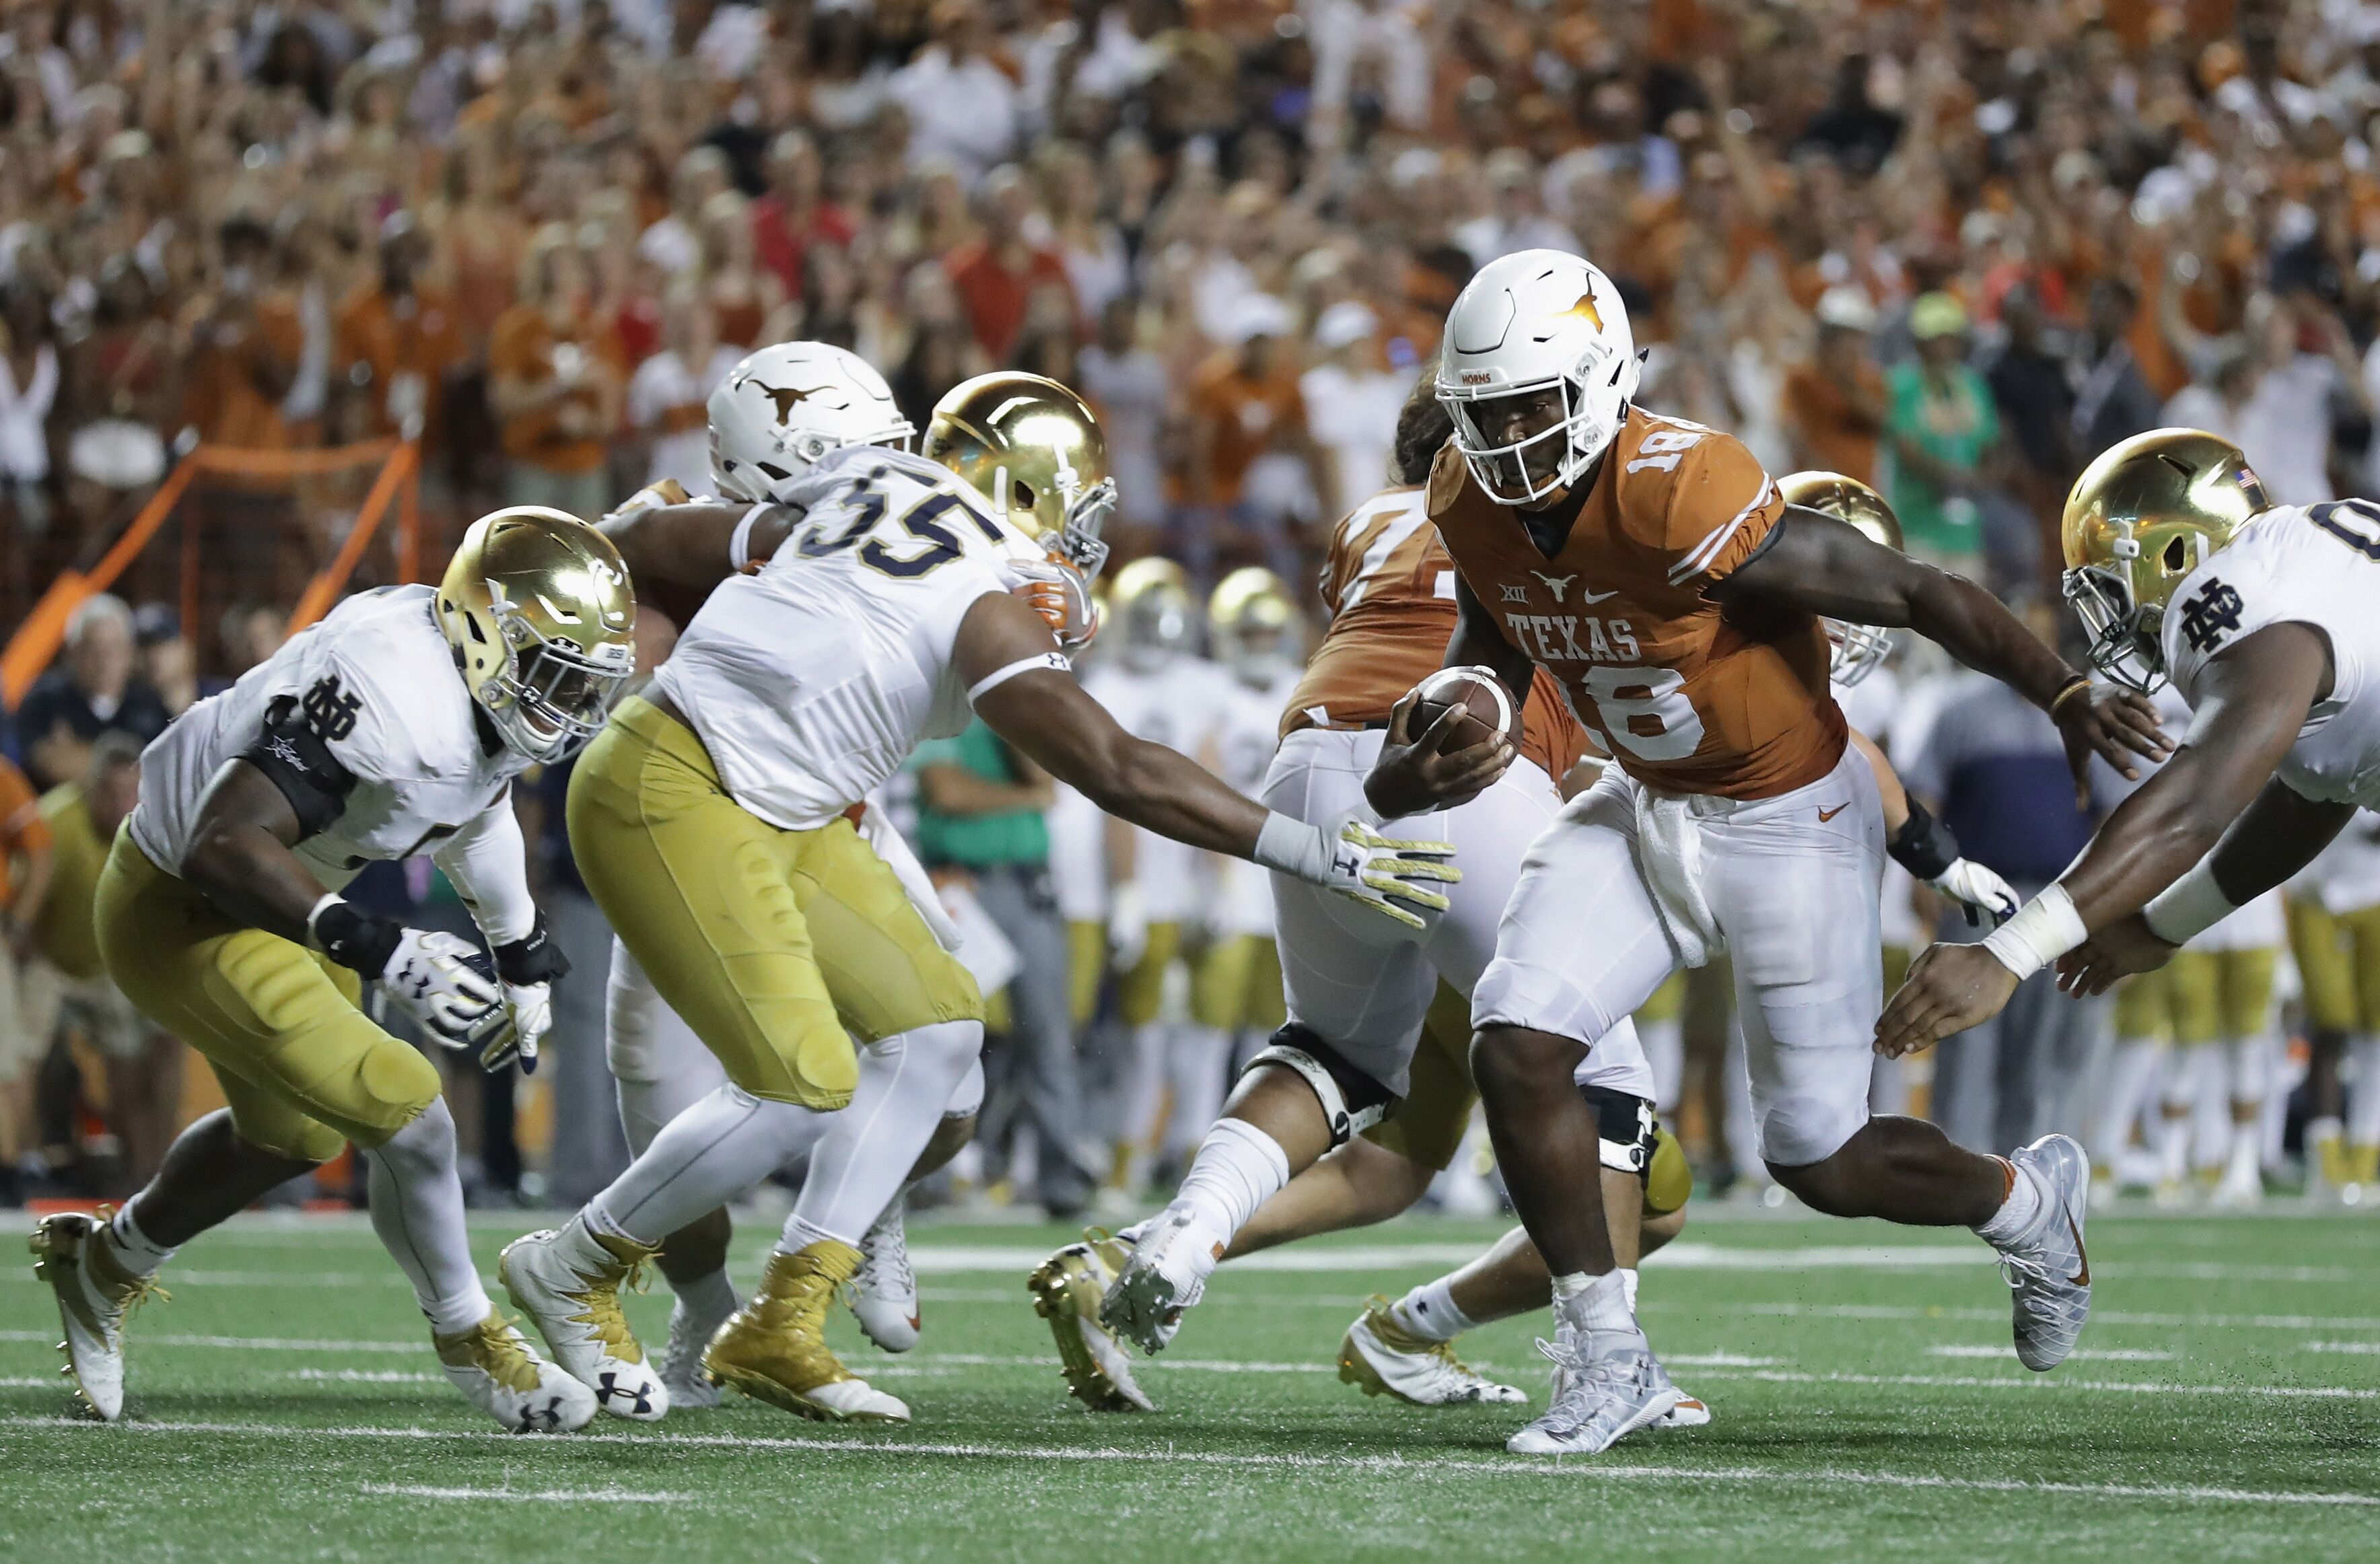 Texas Football: Longhorns are white whale of conference